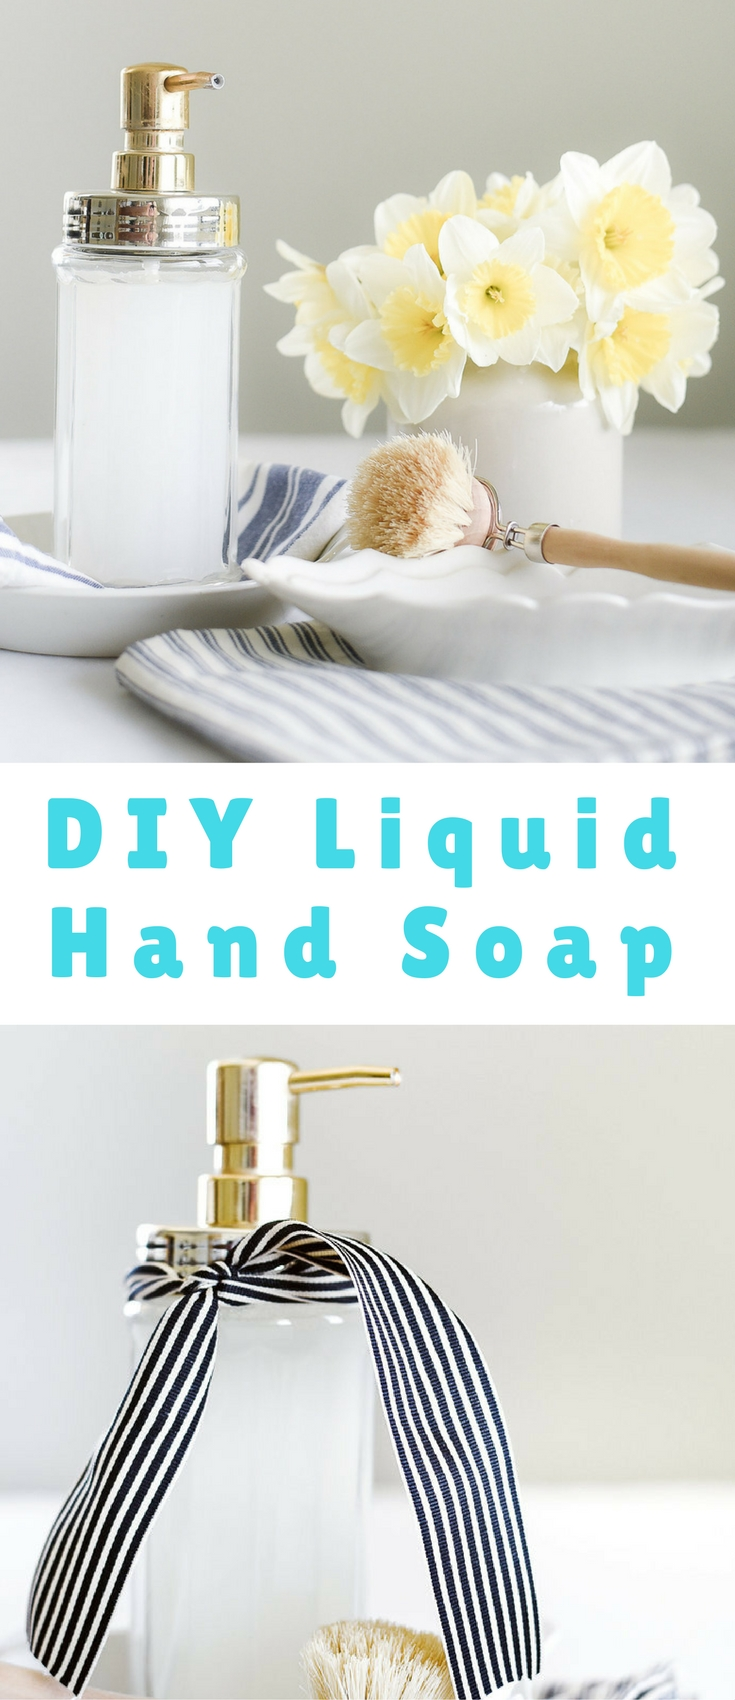 The magic of Castile soap and essential oils shouldn't be underestimated! This is the best DIY liquid hand soap I have found!